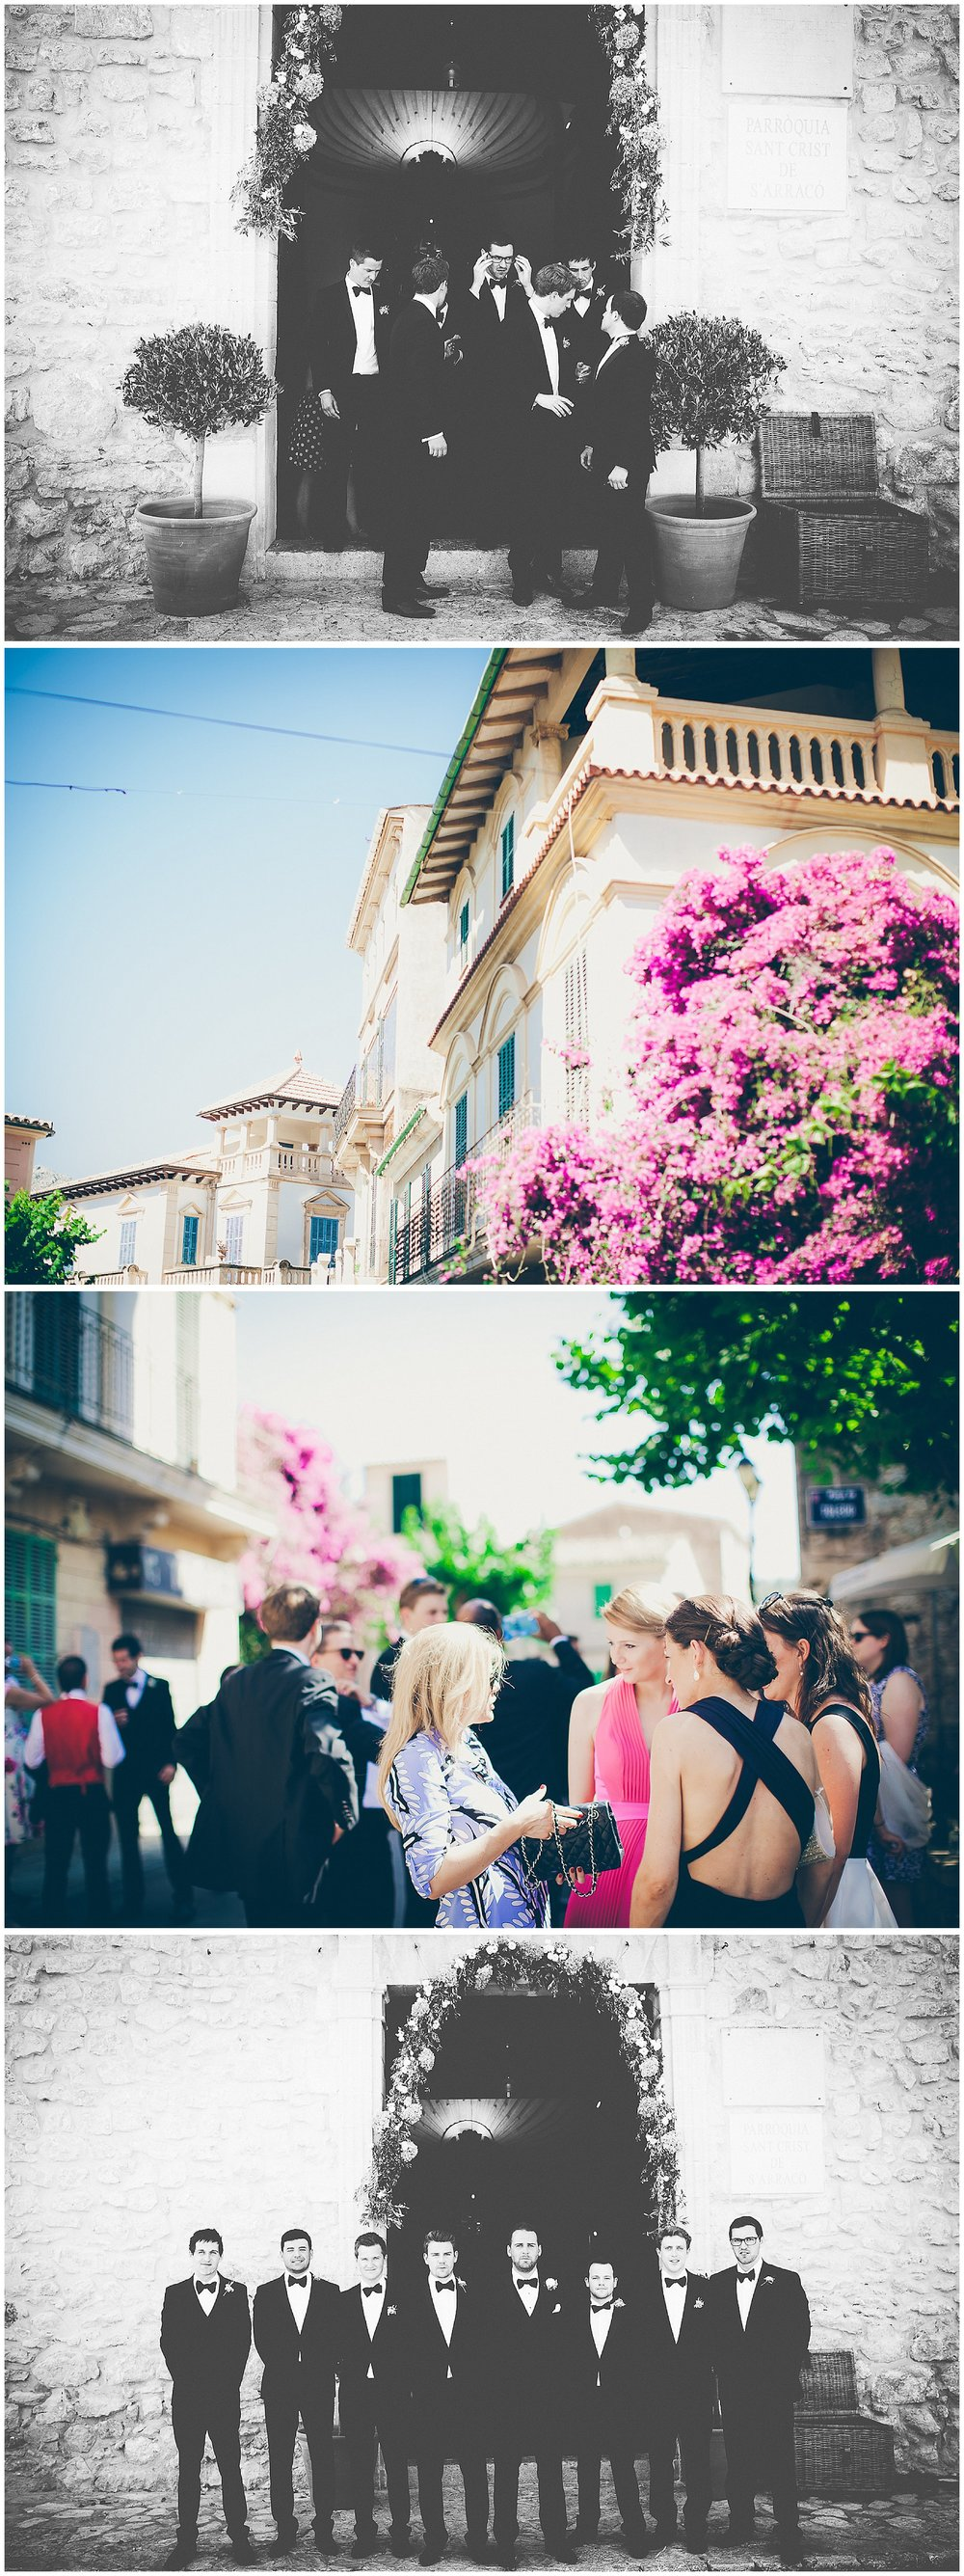 Church_VillaItalia_MallorcaWedding_FionaClairPhotography-67.jpg